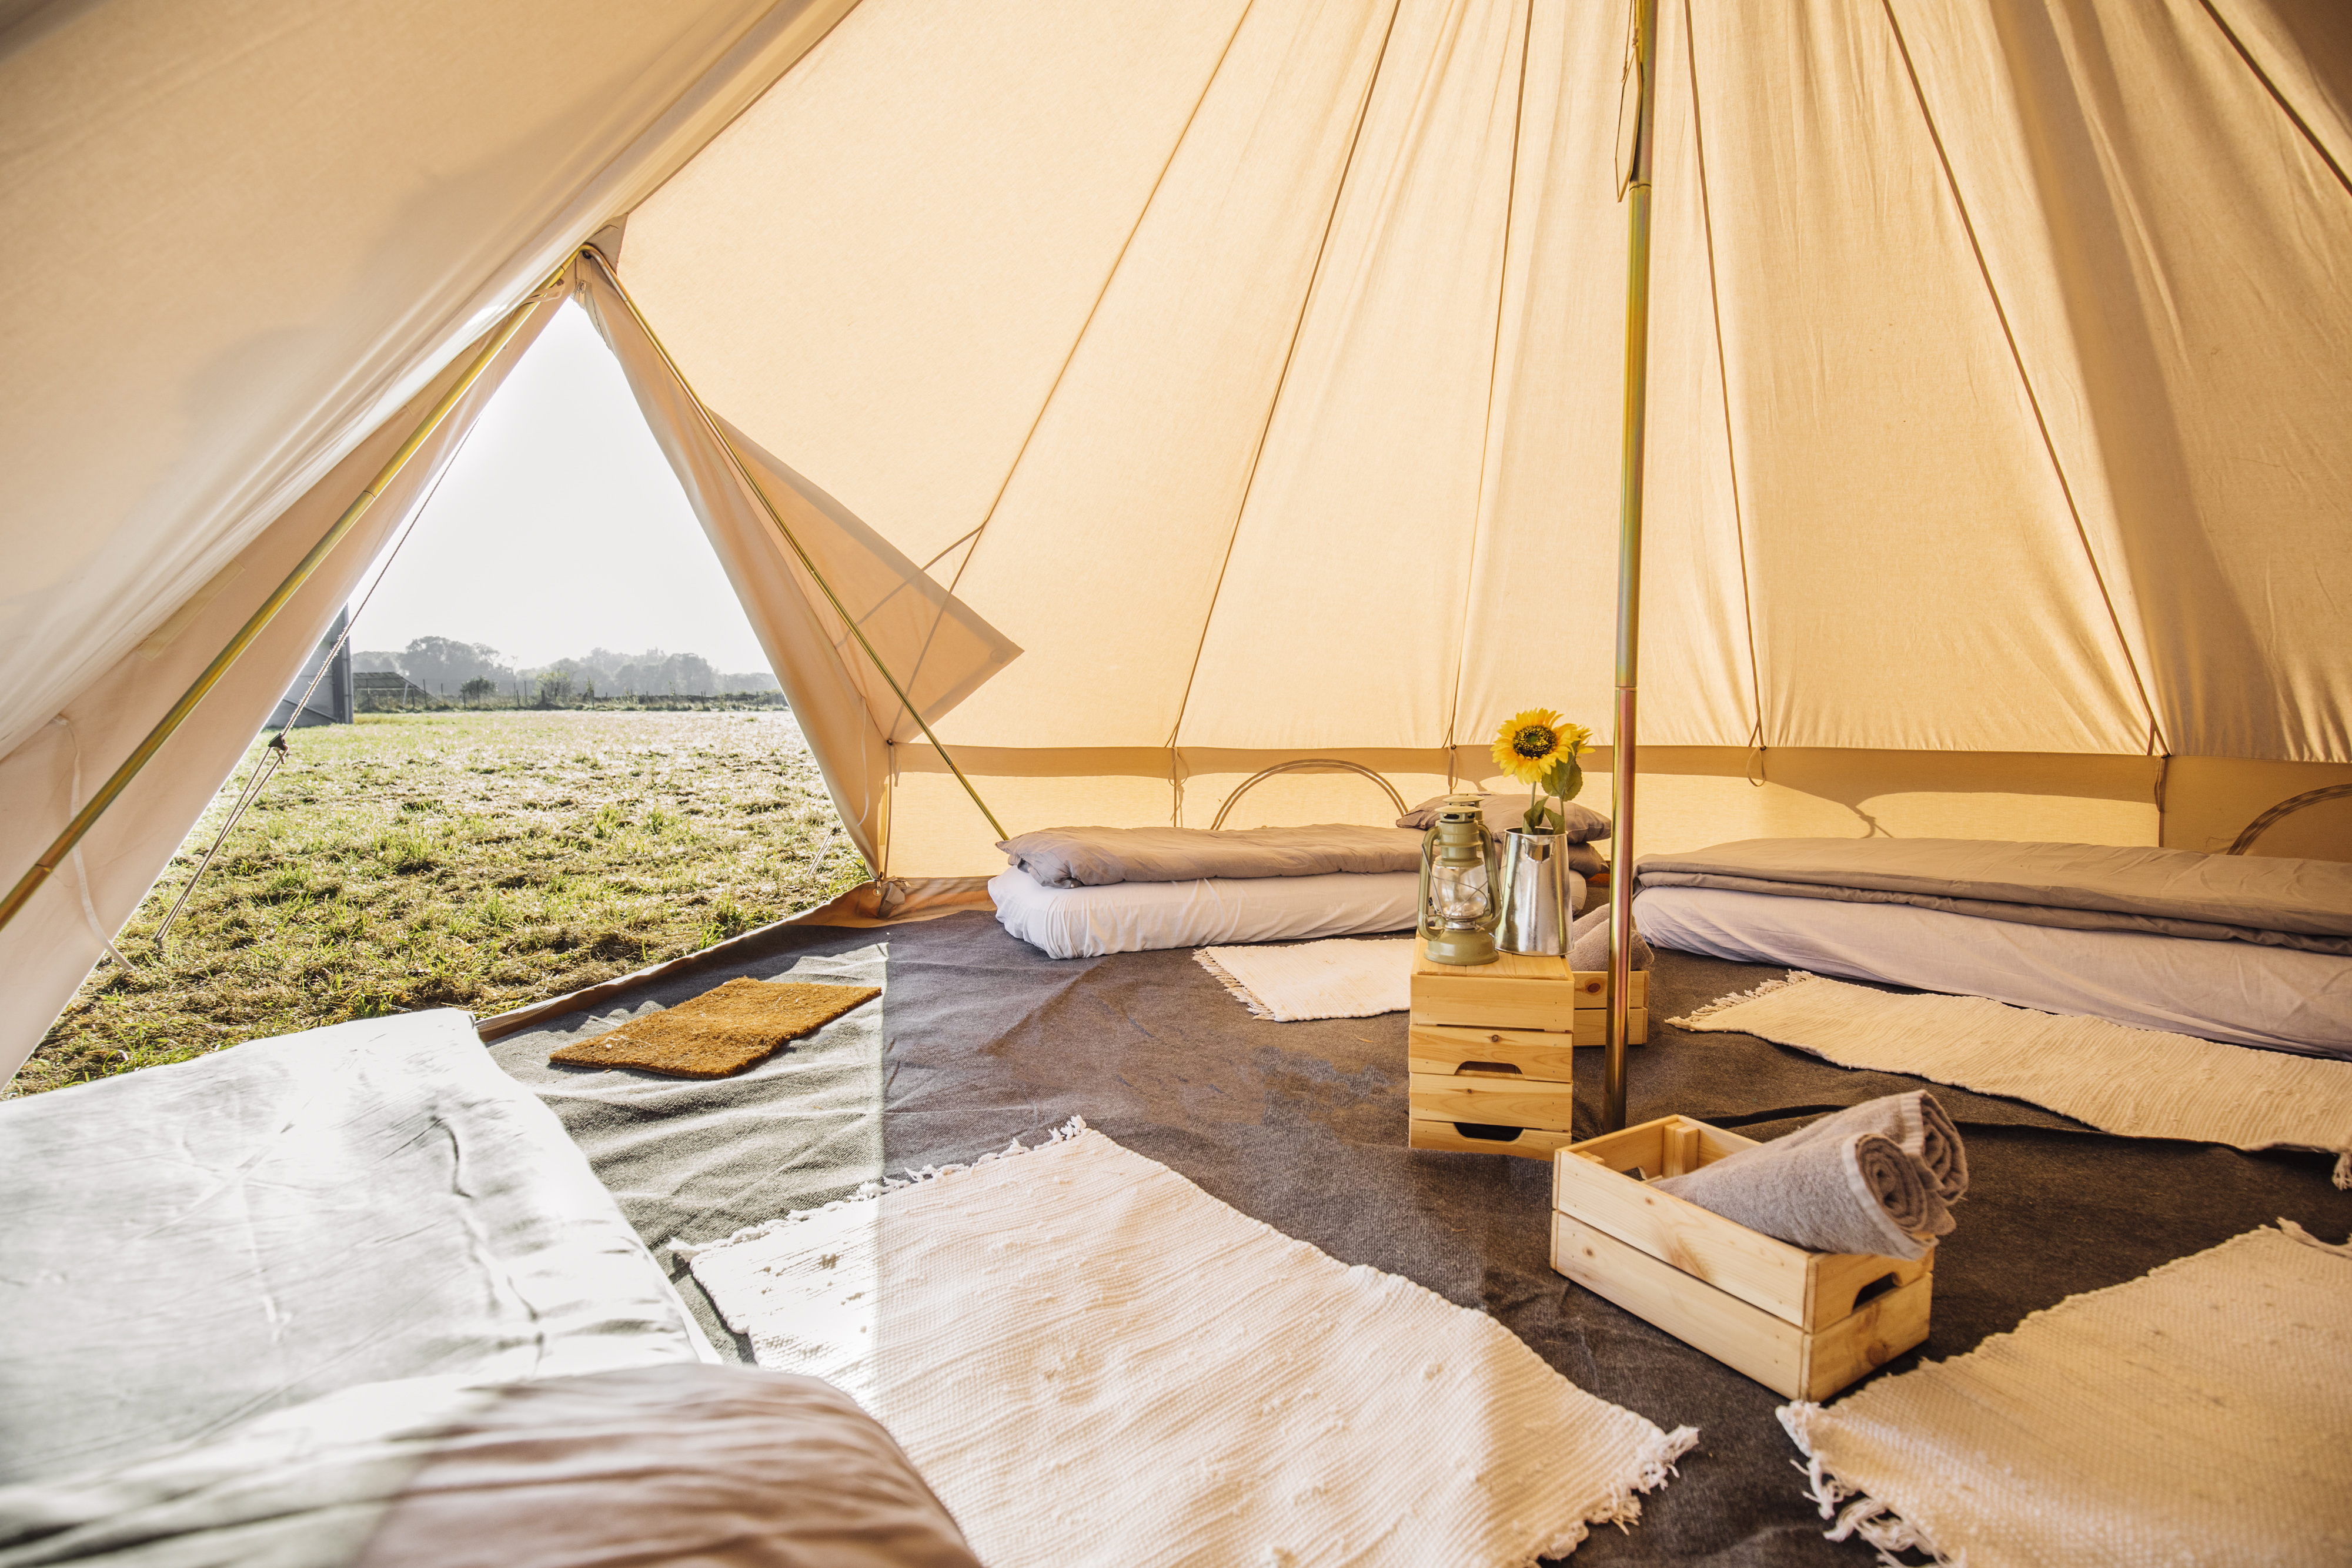 Ticket + Classic Bell Tent | Glamping @ Truck Festival